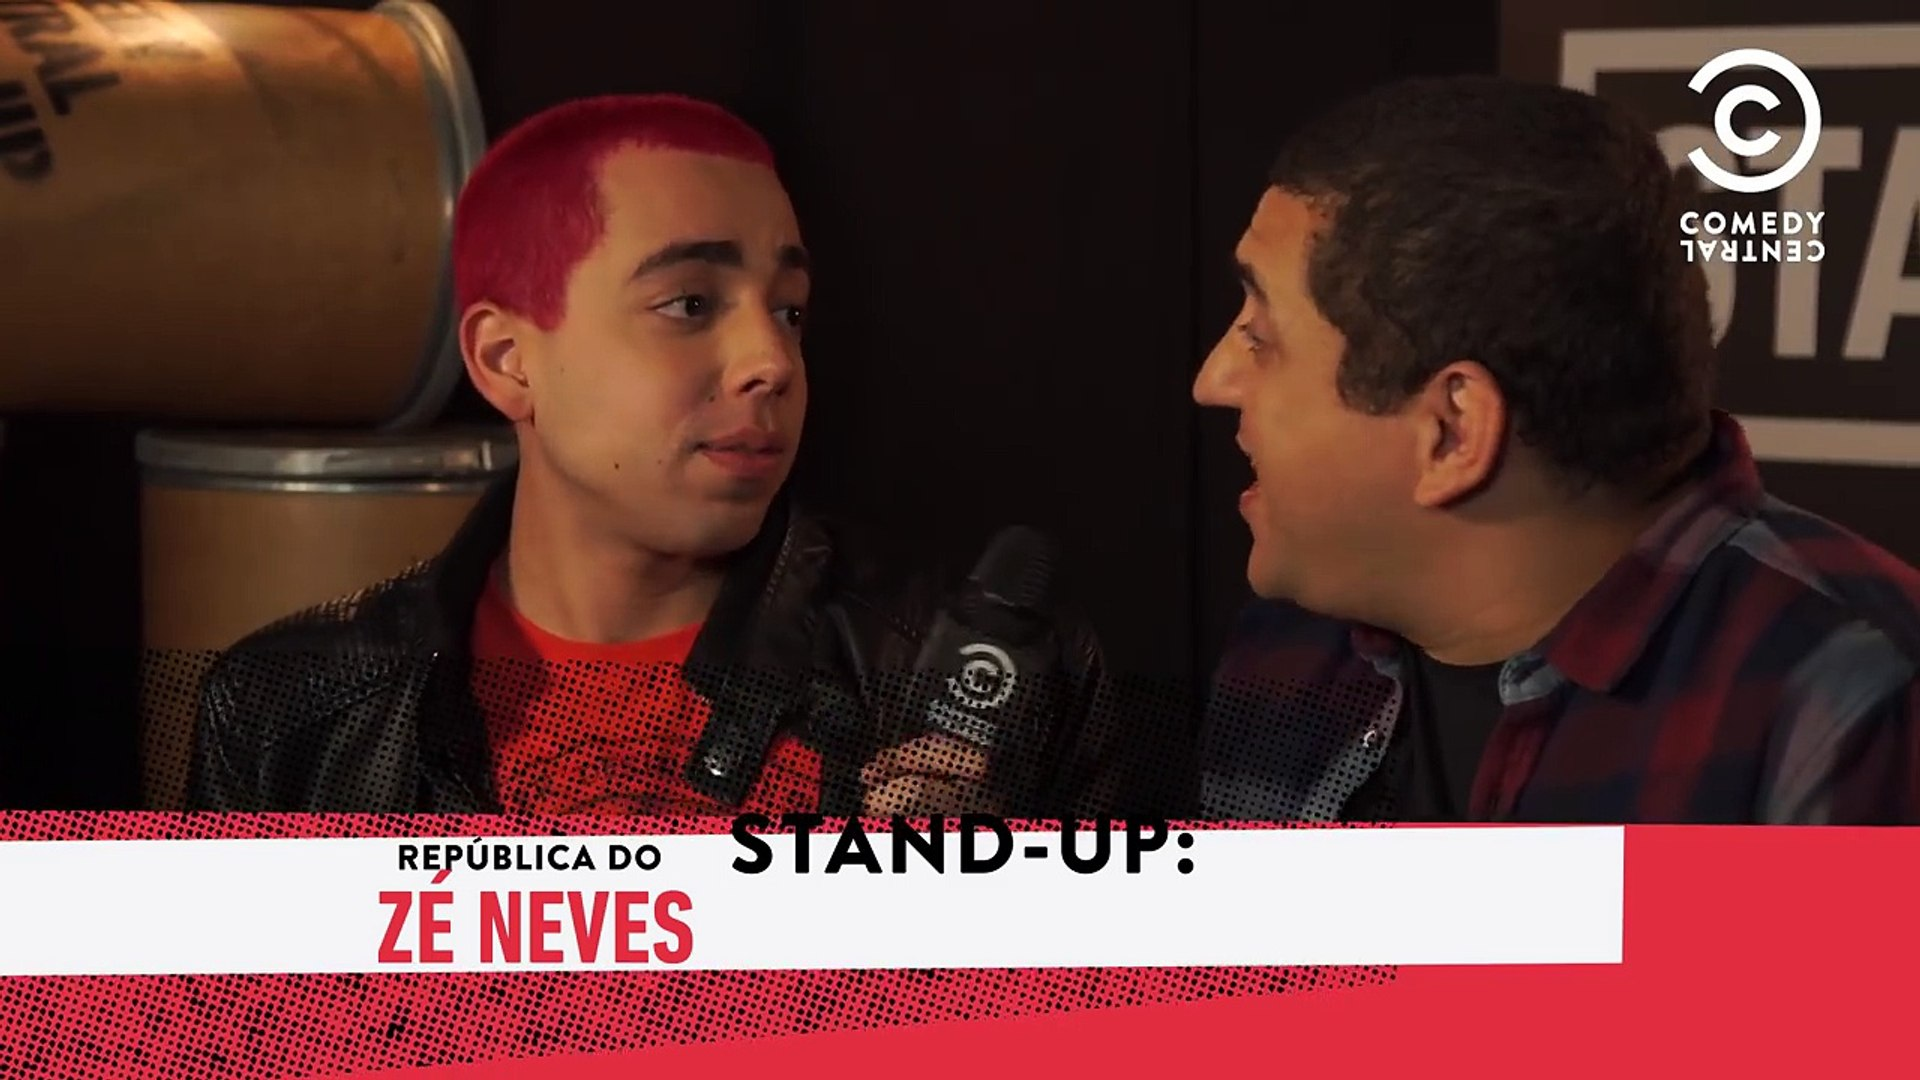 Lucas Selfie nos bastidores do #StandUpNoComedy - Zé Neves